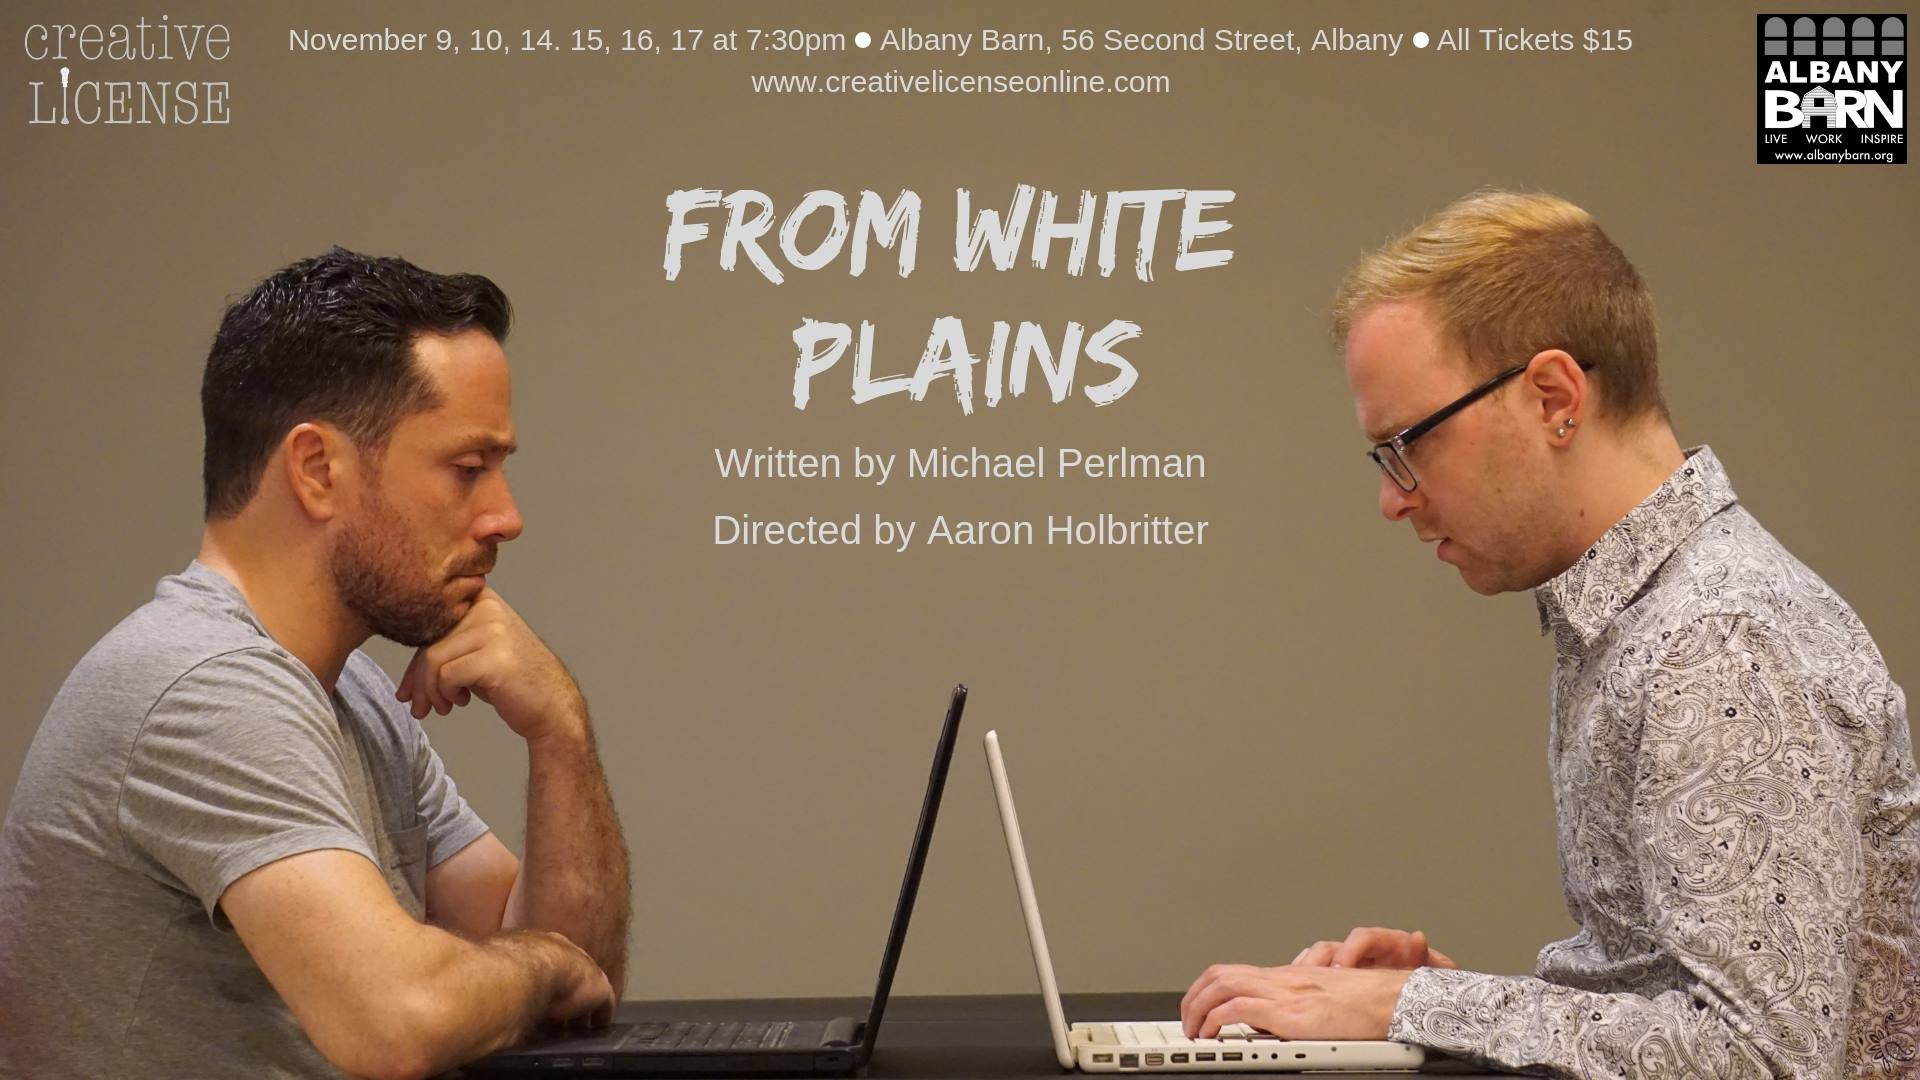 Thoughts on From White Plains… - It was very exciting for us to find a new play that touches on current issues like the lasting effects of bullying and the weaponization of social media, and that it deals with these issues through the lens of characters who seem very real and of our time is what ultimately made us want to produce this show.